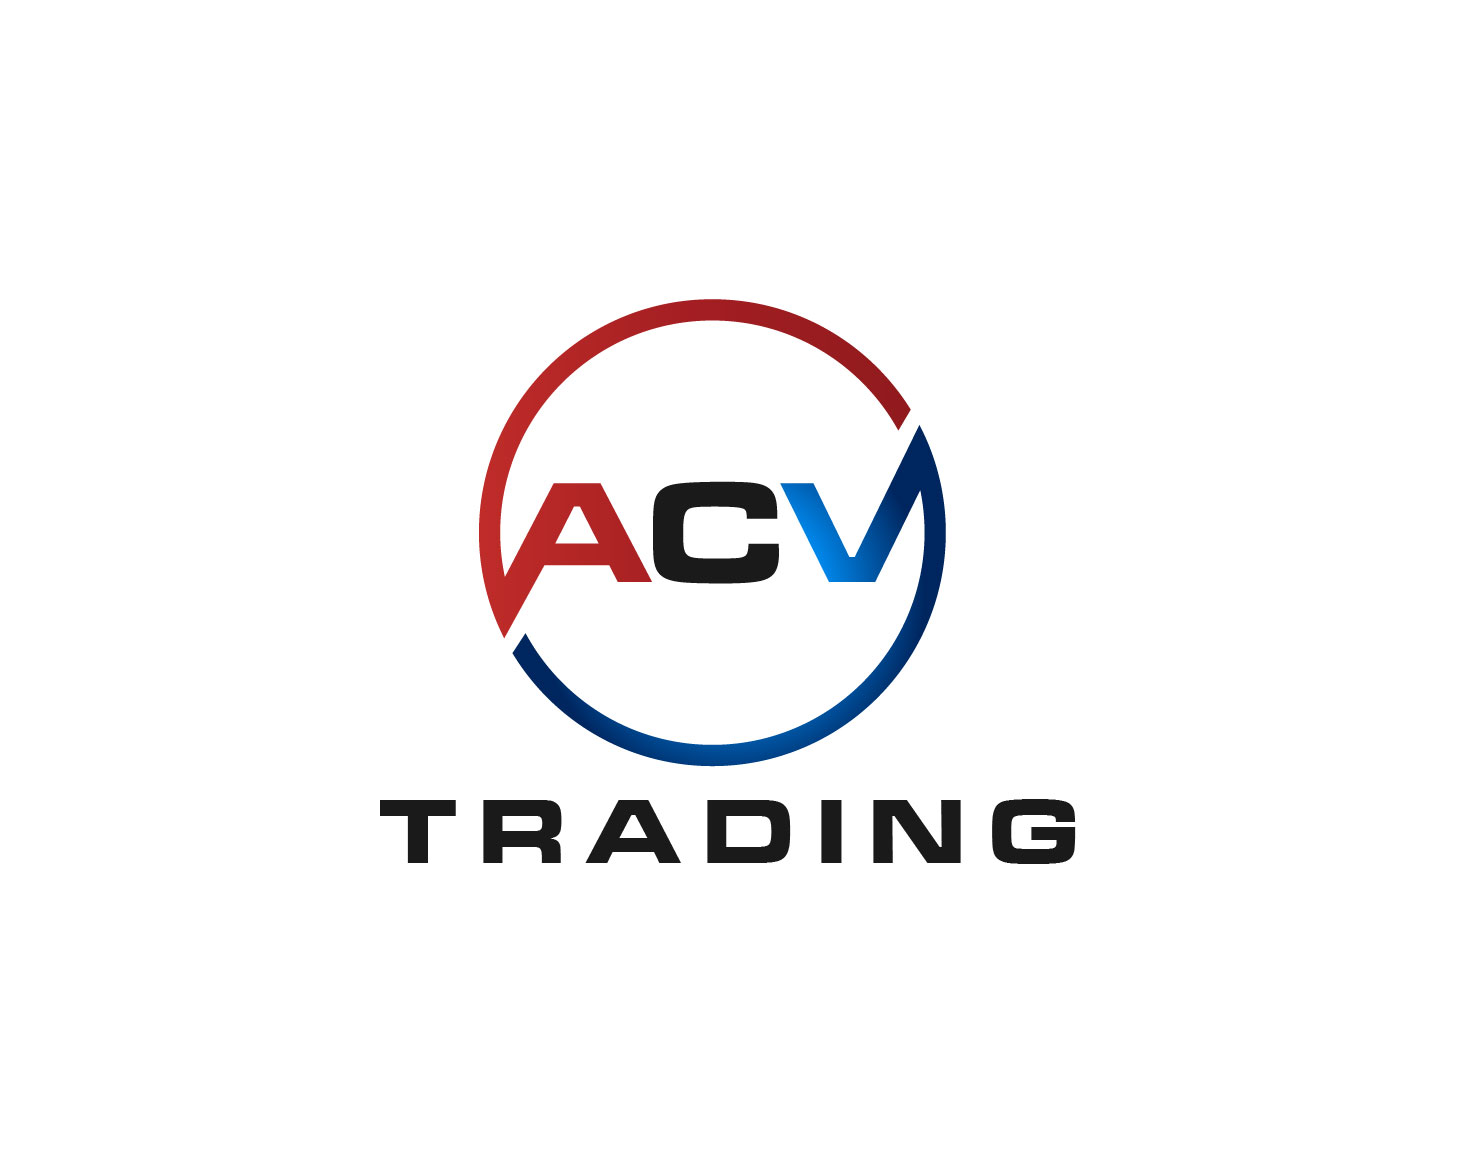 Angstrem Trading Logo photo - 1